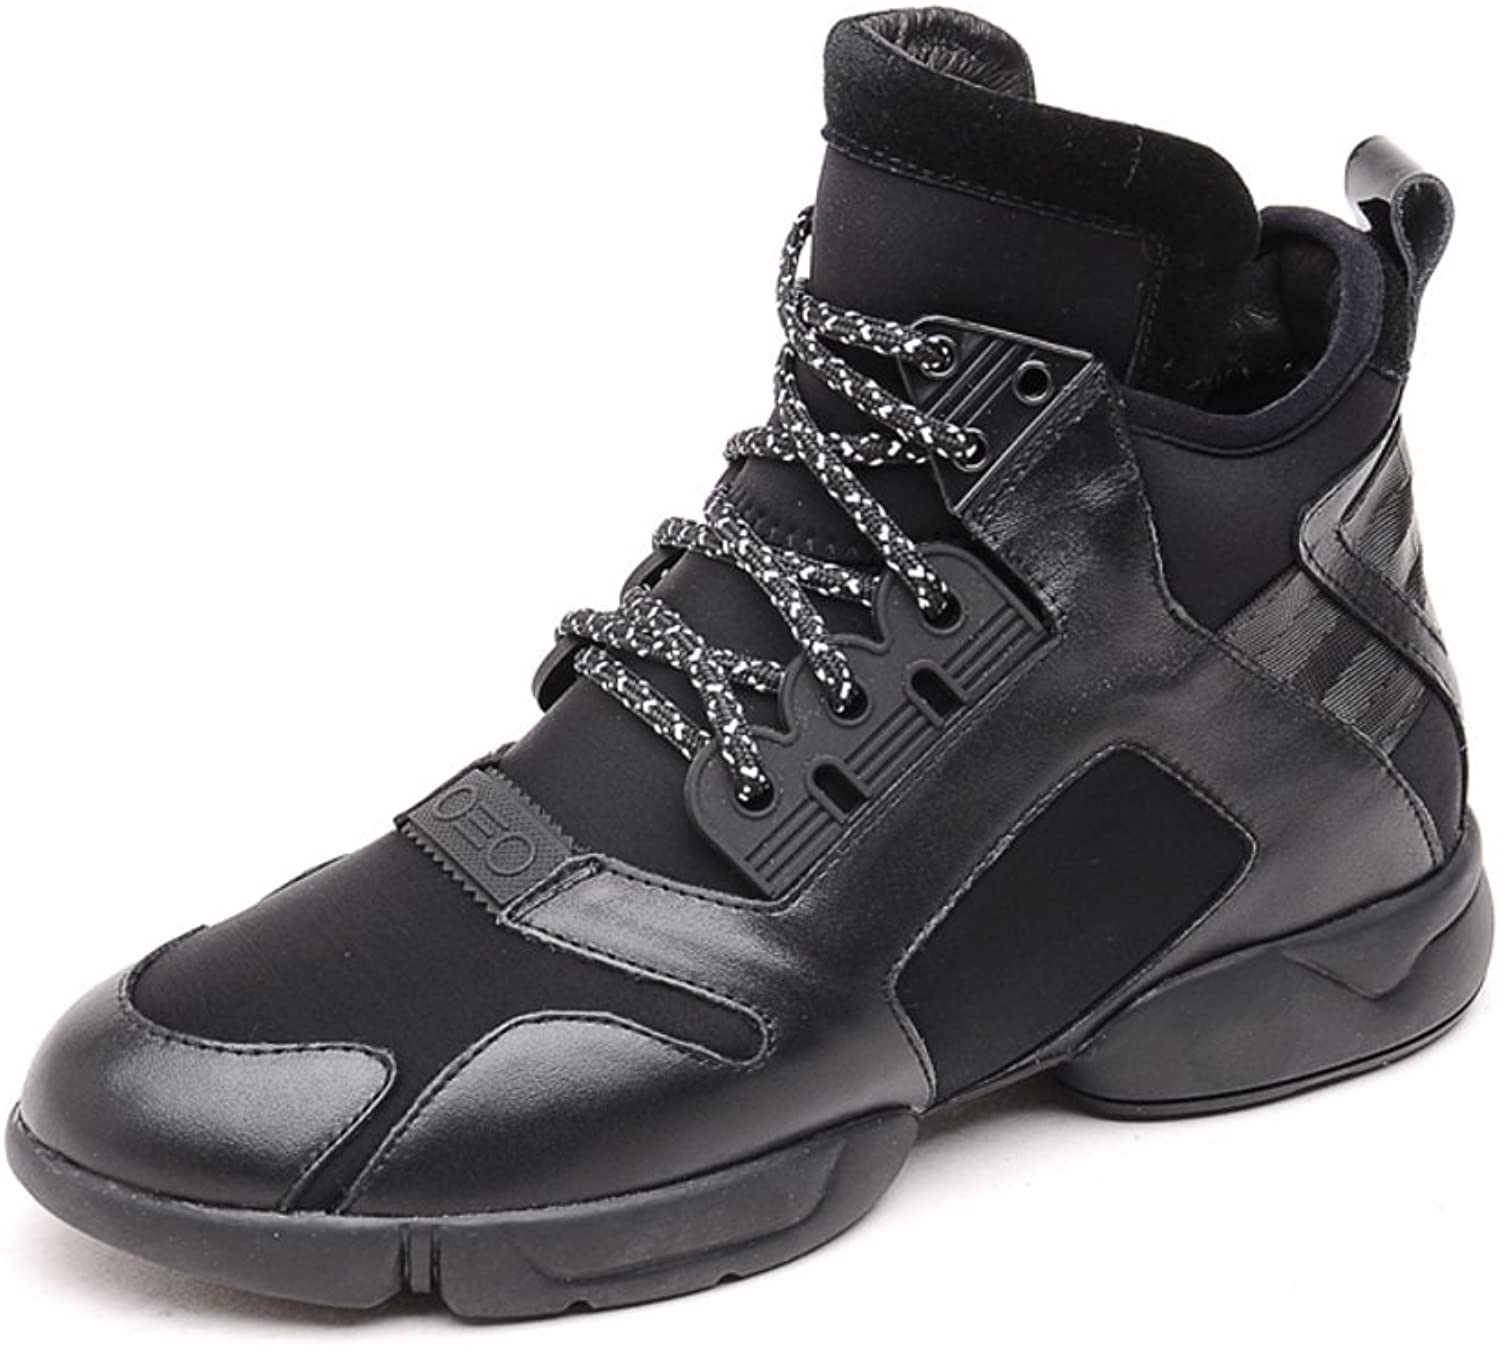 WLJSLLZYQ Spring of Spring Fashion shoes Casual Sport shoes Board shoes Round Tube in The Head Strap Sneakers